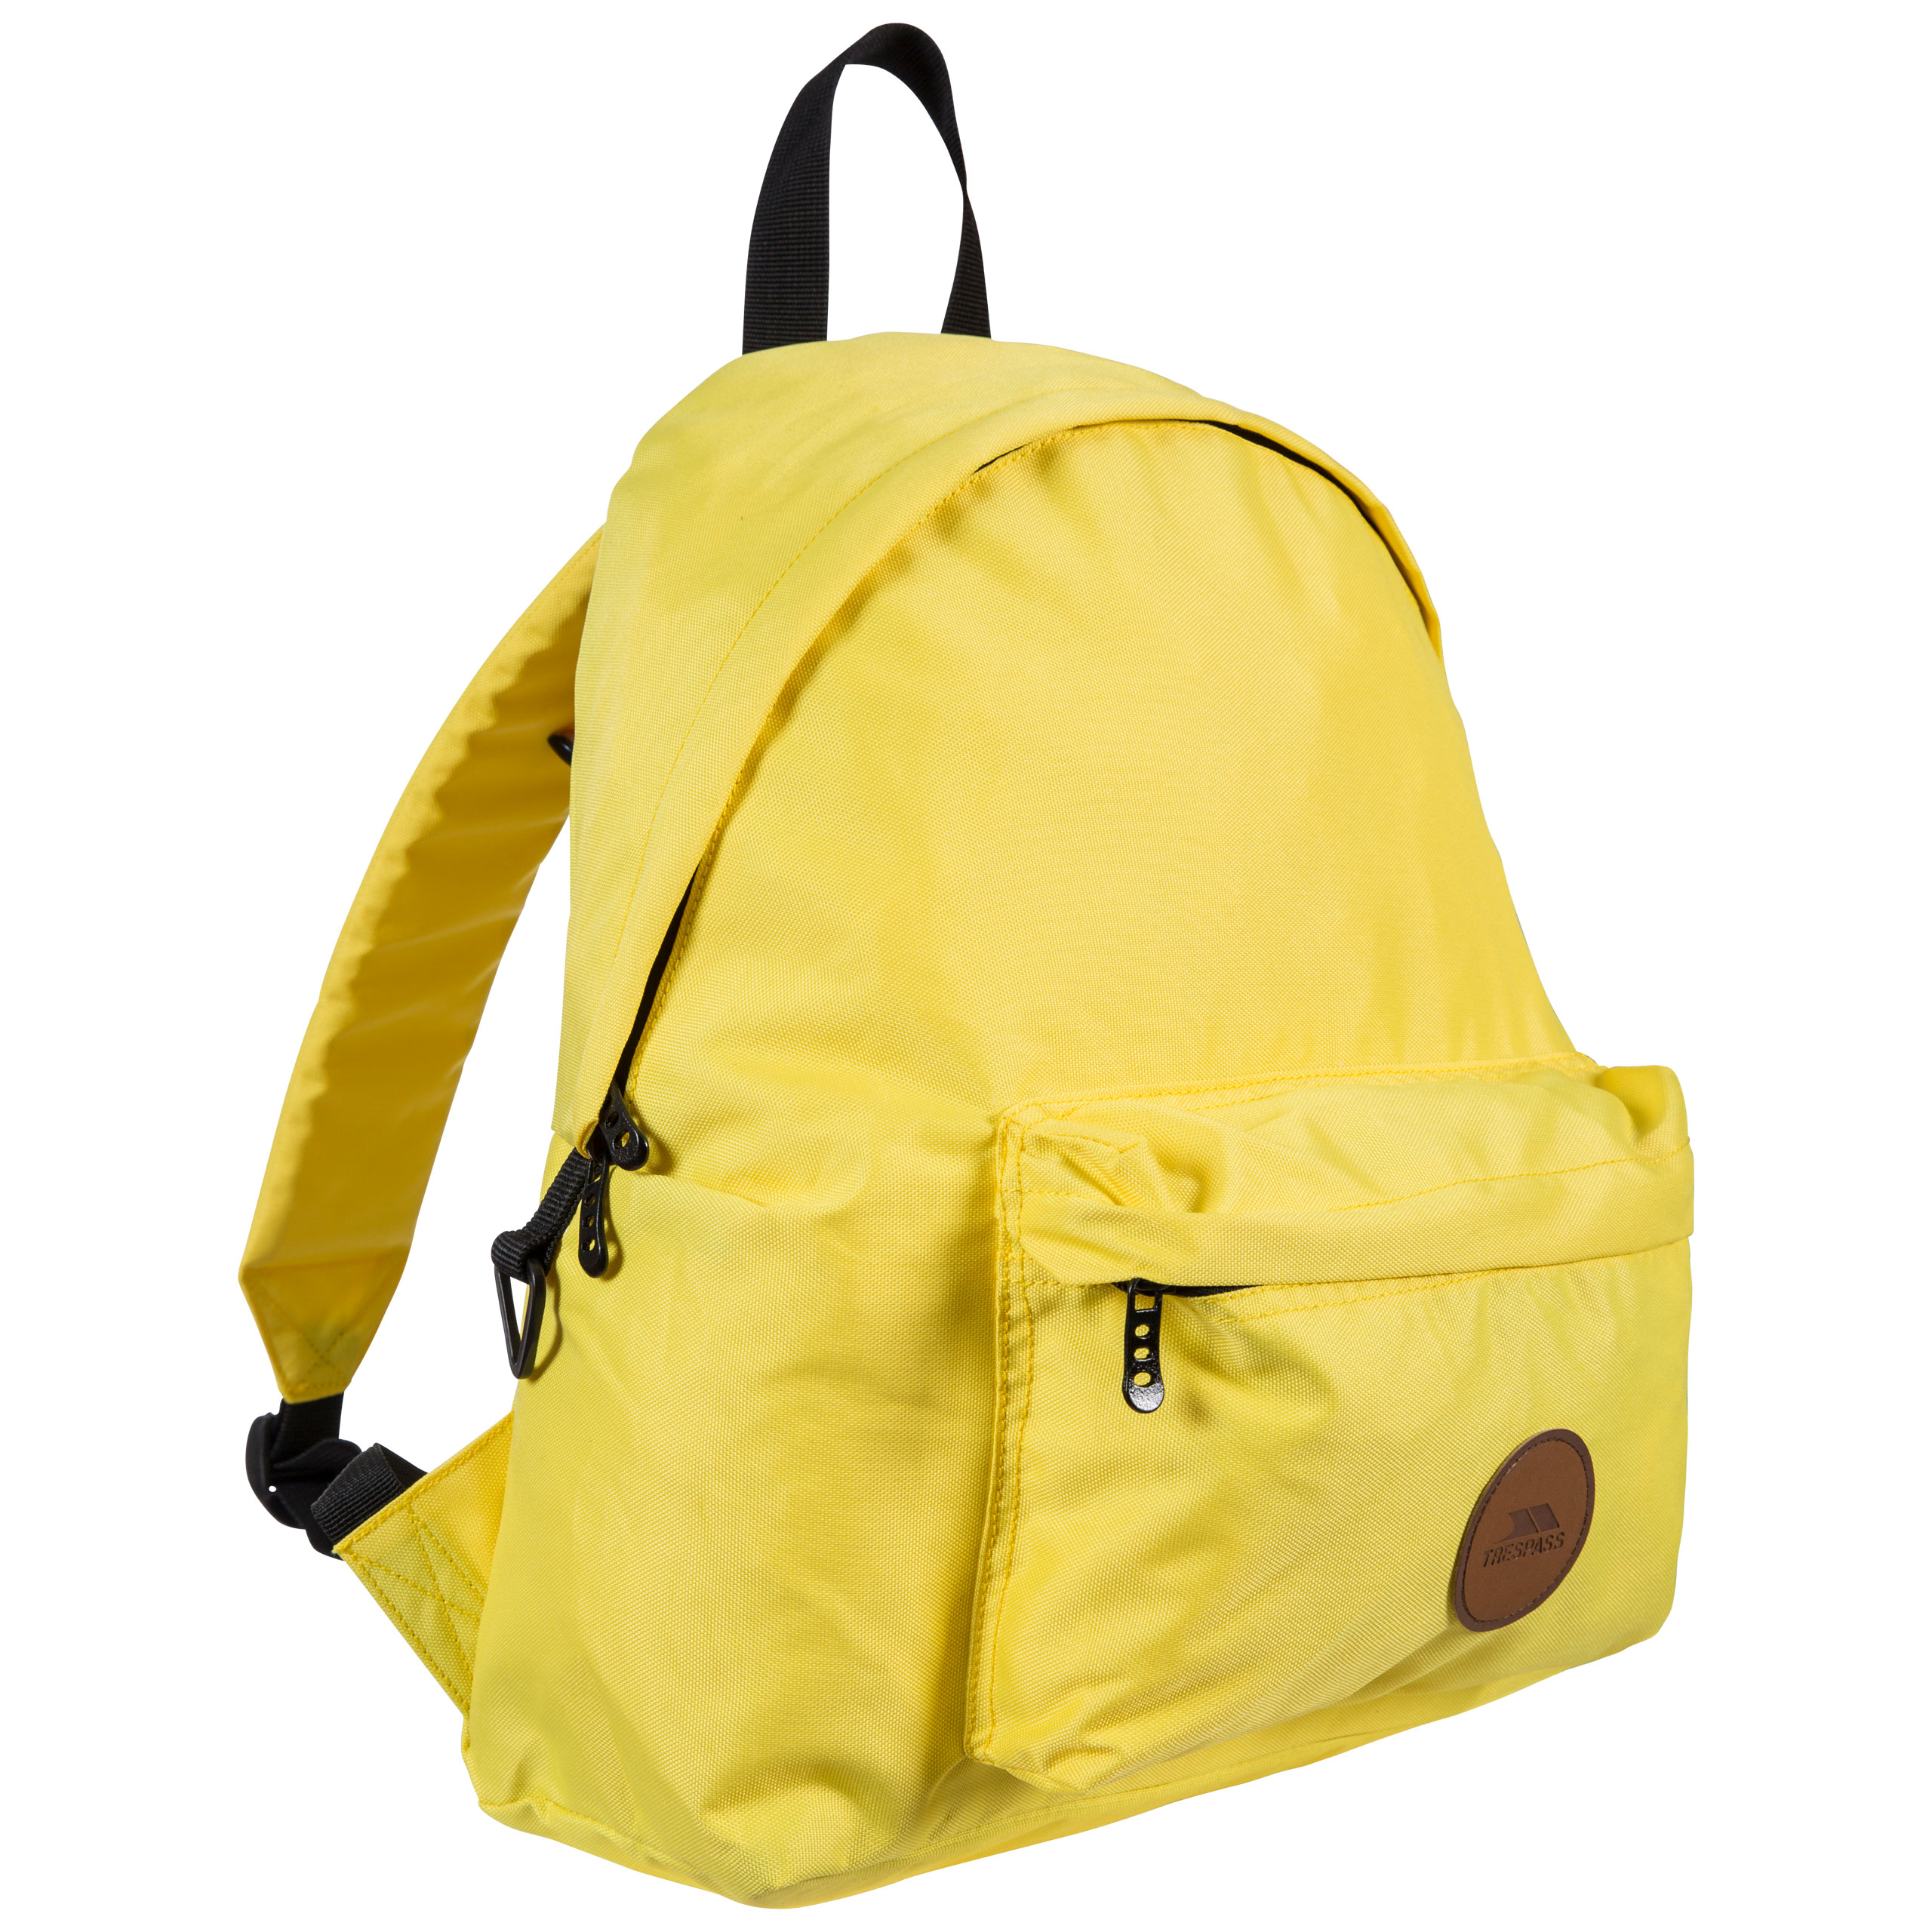 Aabner 18l Casual Backpack